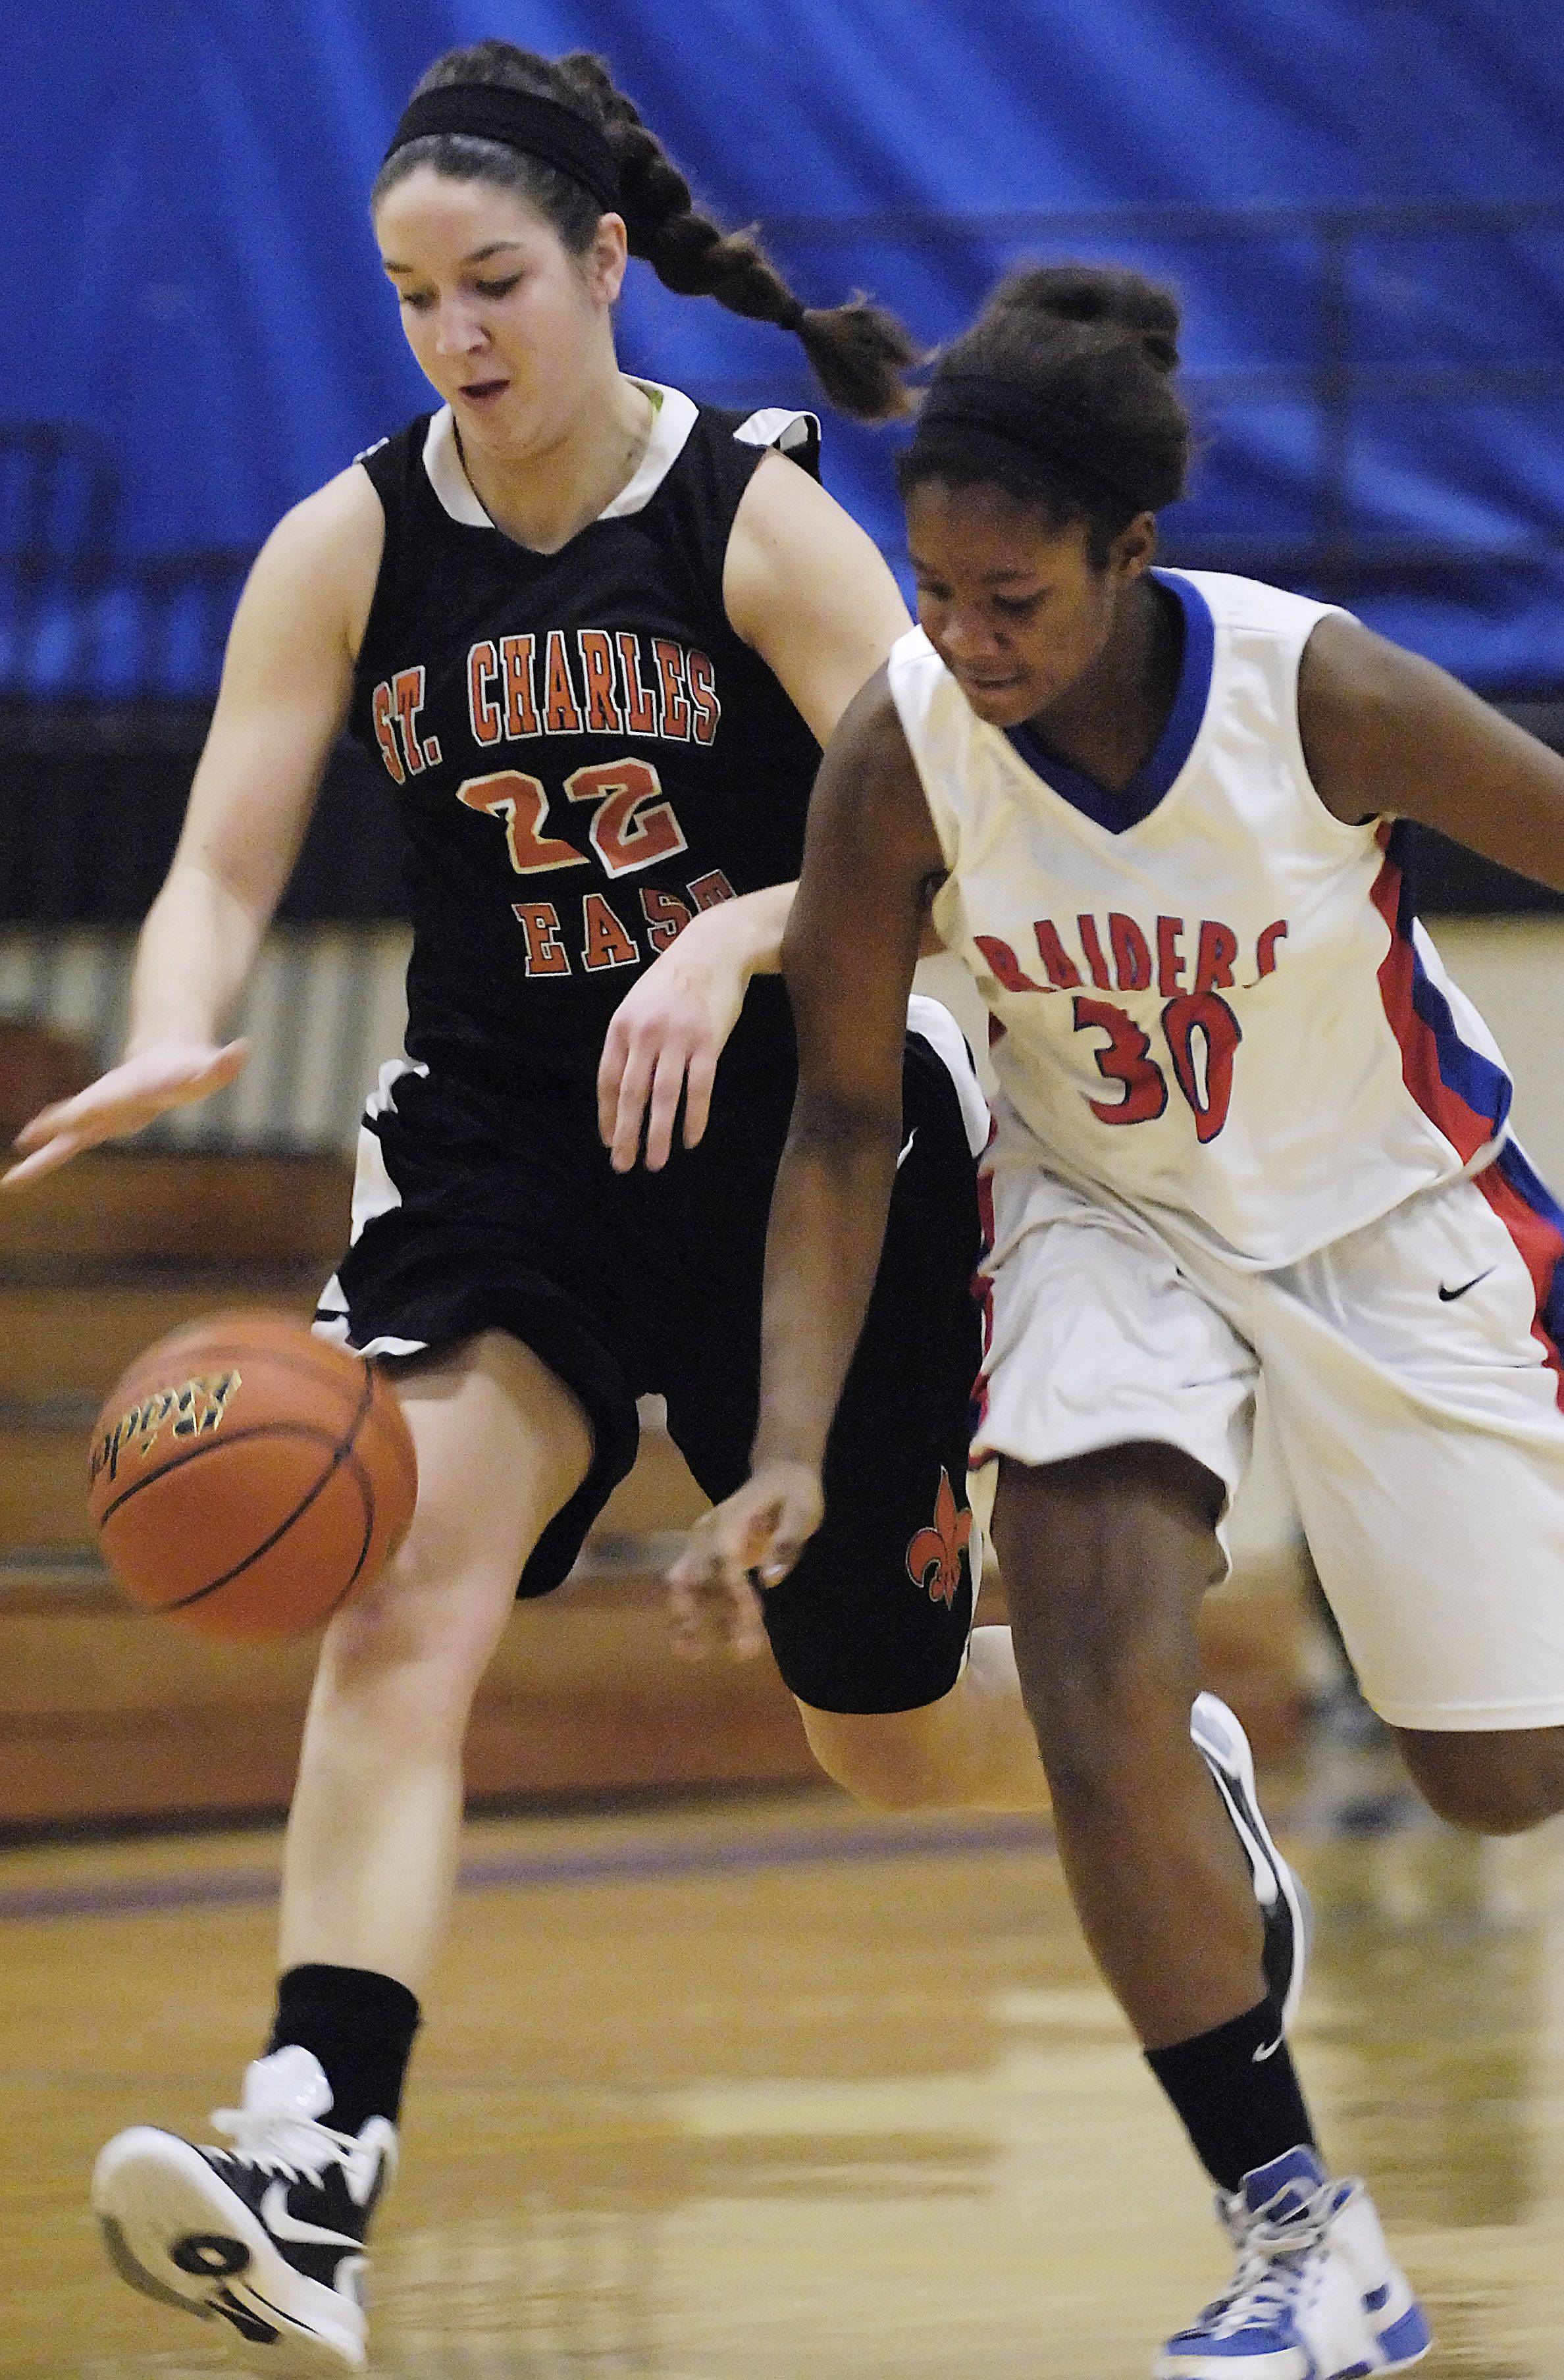 St. Charles East's Dani Asquini and Glenbard South's Hannah Davey chase a loose ball at the Wheaton North Holiday Tournament Monday.